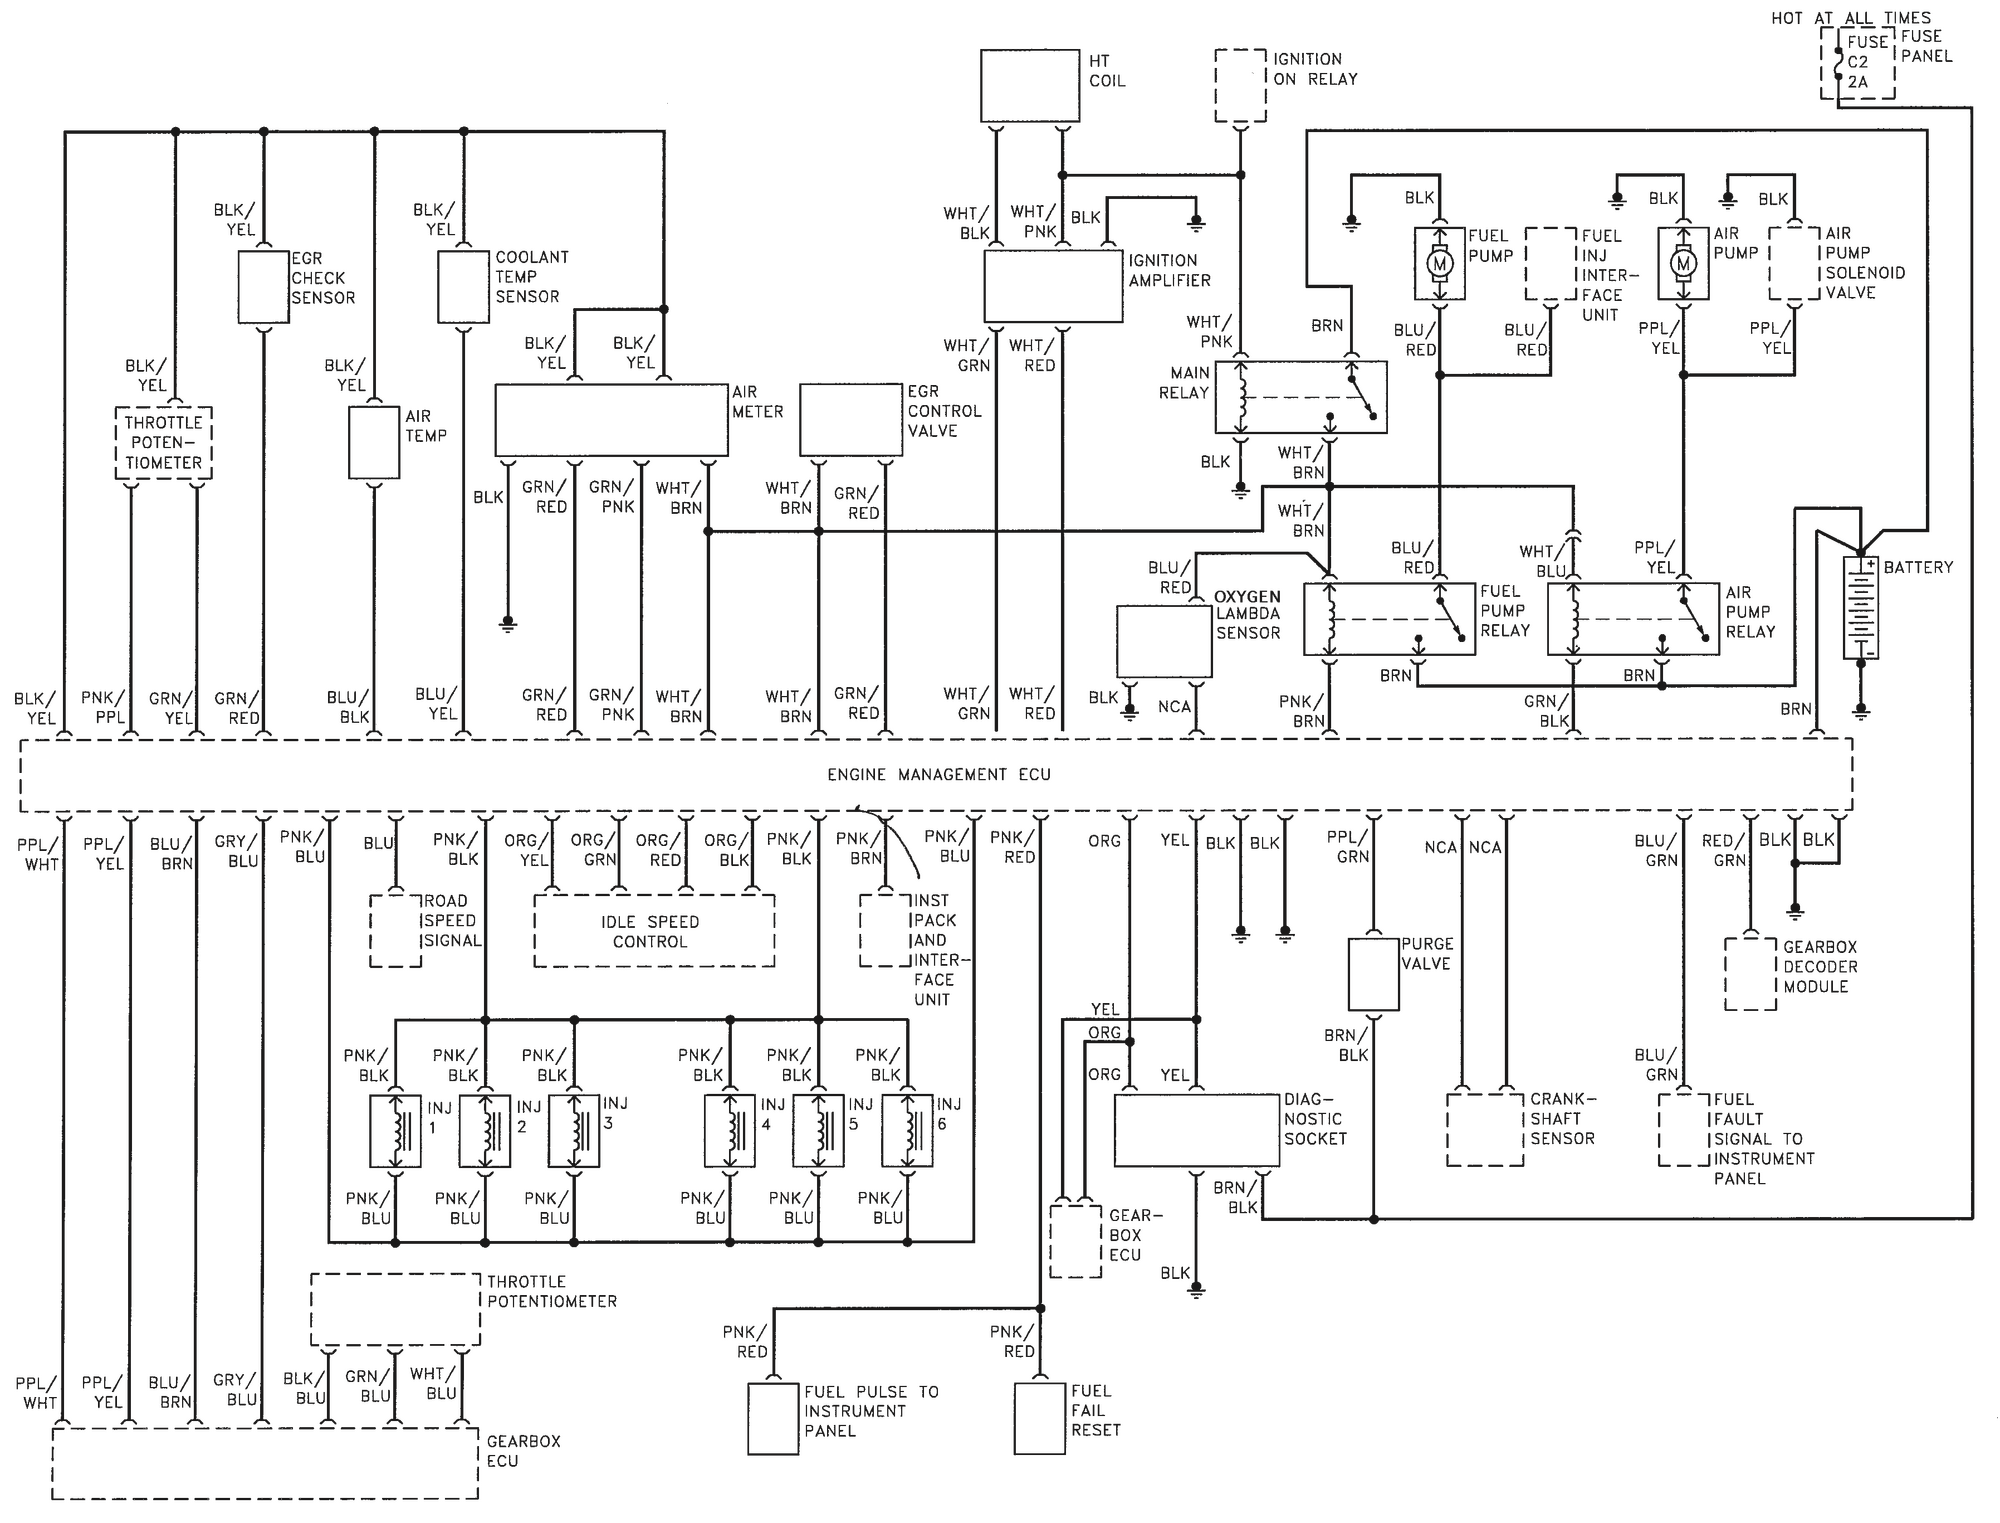 1988 Xj40 Ecm Schematic - Jaguar Forums